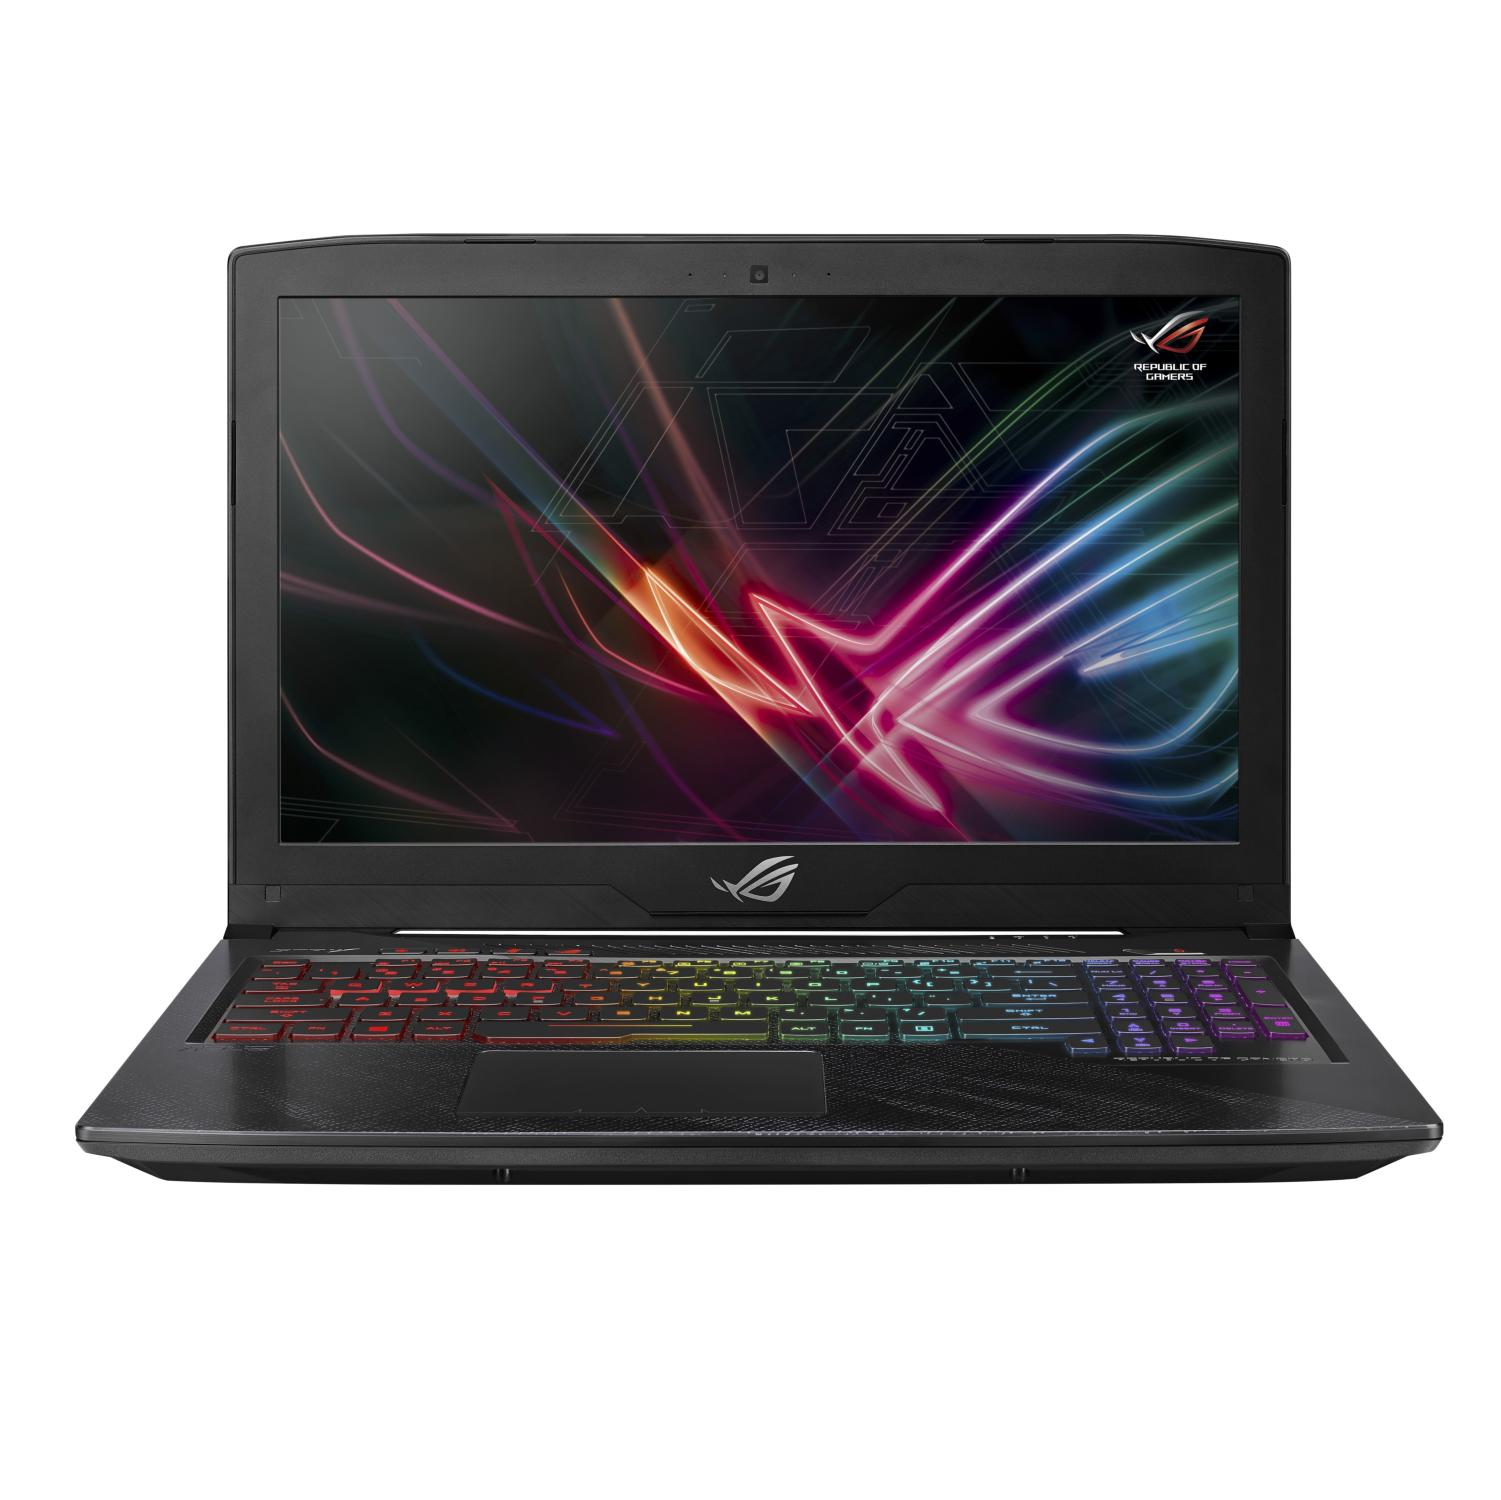 ASUS ROG Strix Hero Edition GL503GE-ES52 Gaming and Business Laptop (8th Gen Intel Core i5-8300H, 32GB RAM, 1TB SSHD + 256GB Sata SSD, 15.6 inch FHD (1920x1080) Display, GTX 1050 Ti 4GB, Win 10 Home)